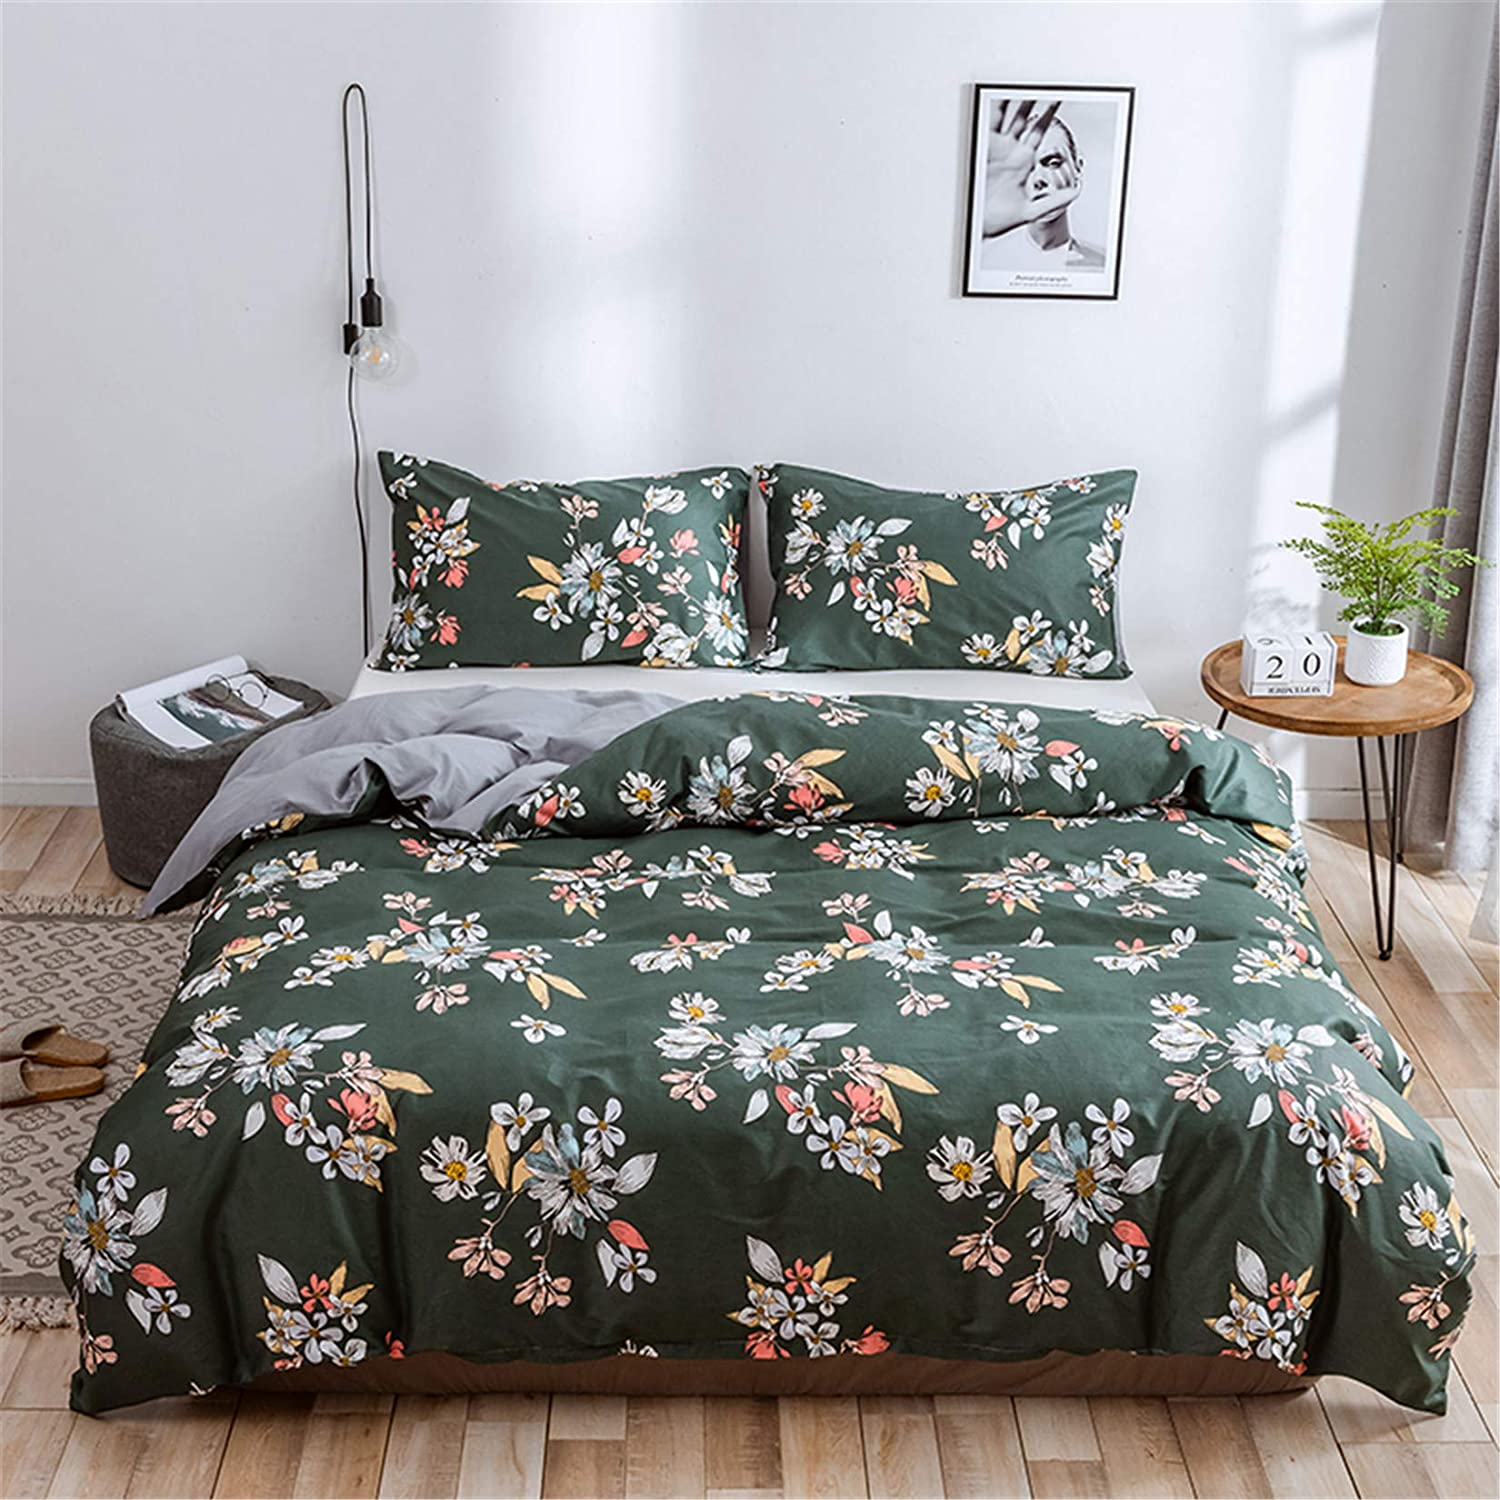 Floral Ranking integrated High material 1st place Queen Bedding Duvet Cover Set Leaves Garden - Flower Boho